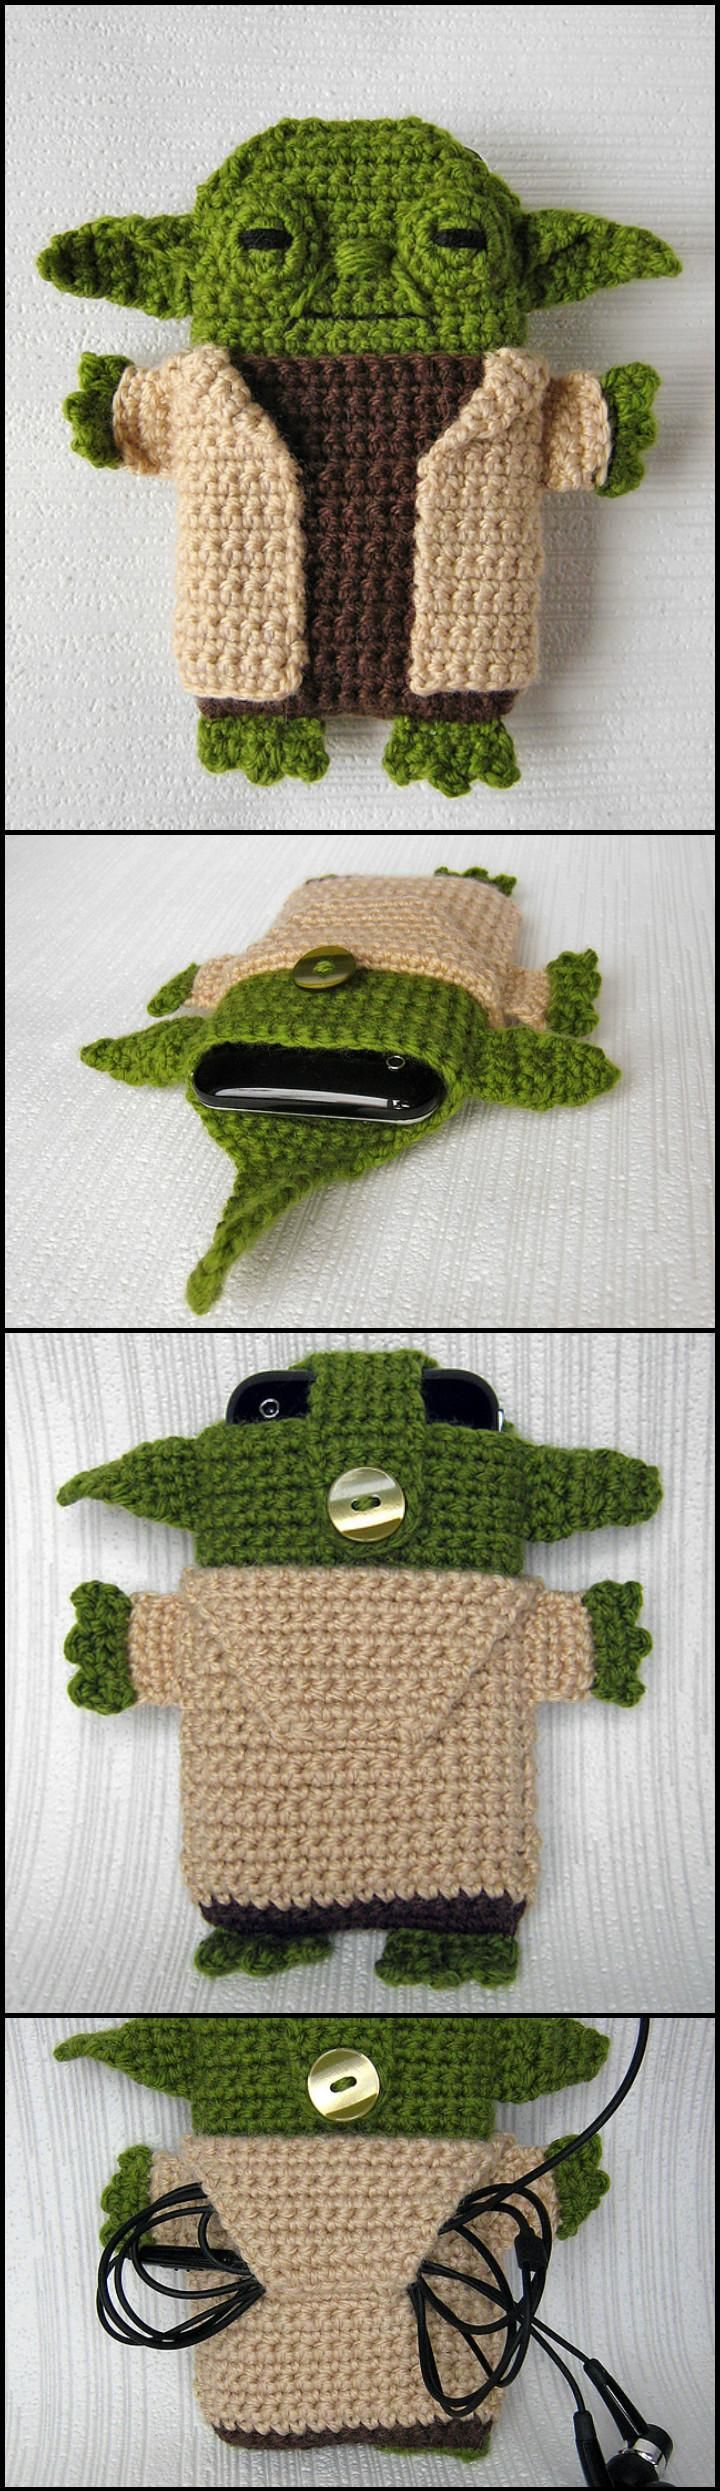 Lovely Crochet Star Wars Yoda iPhone Case - 50 Free Crochet Phone Case Patterns - Page 3 of 5 - DIY & Crafts